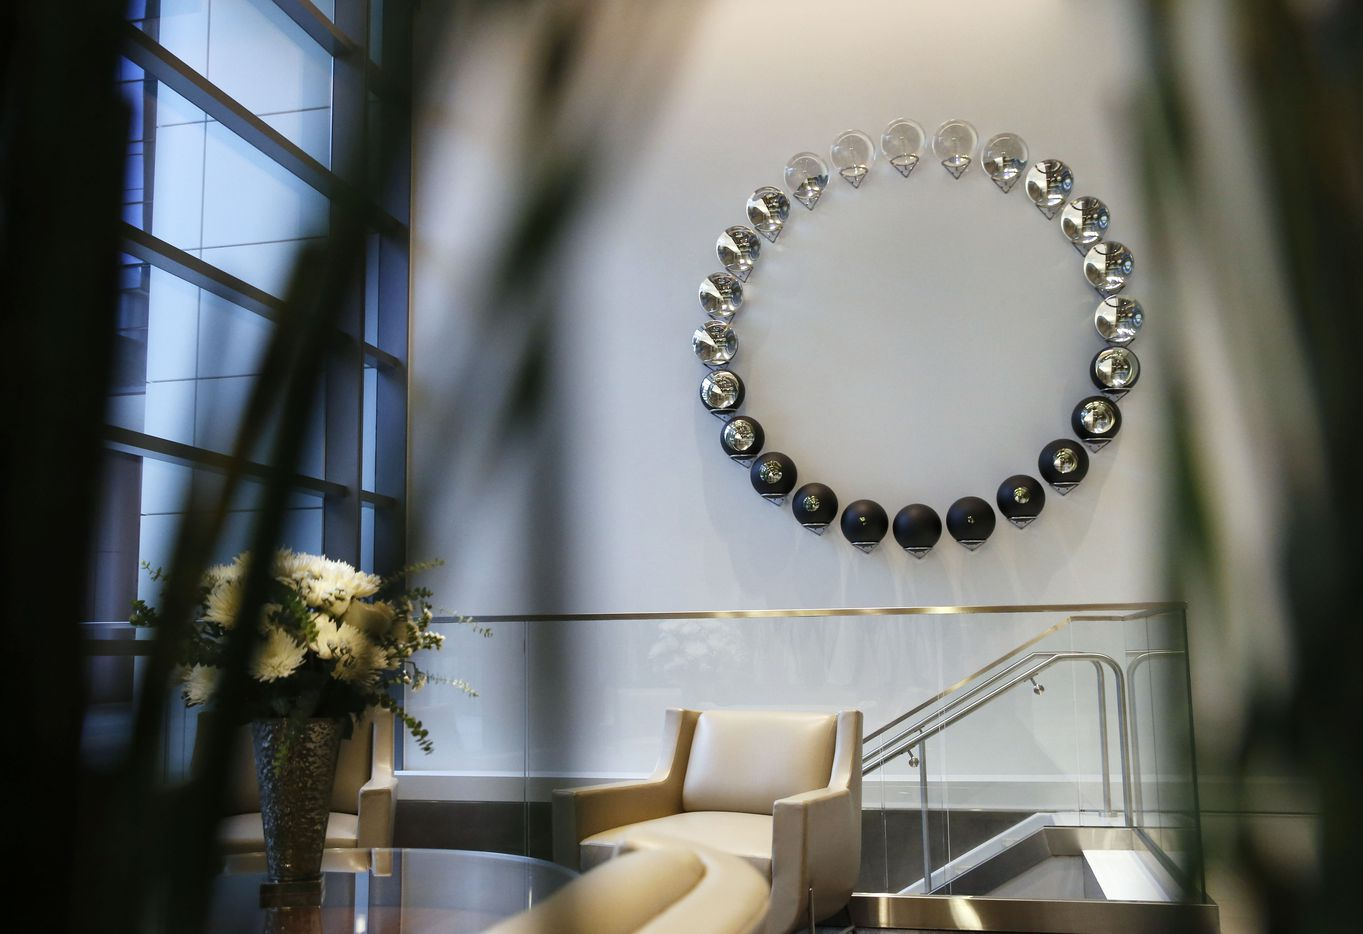 Breathing Moon by Olafur Eliasson is on display at the new Park District high-rise complex in Dallas.